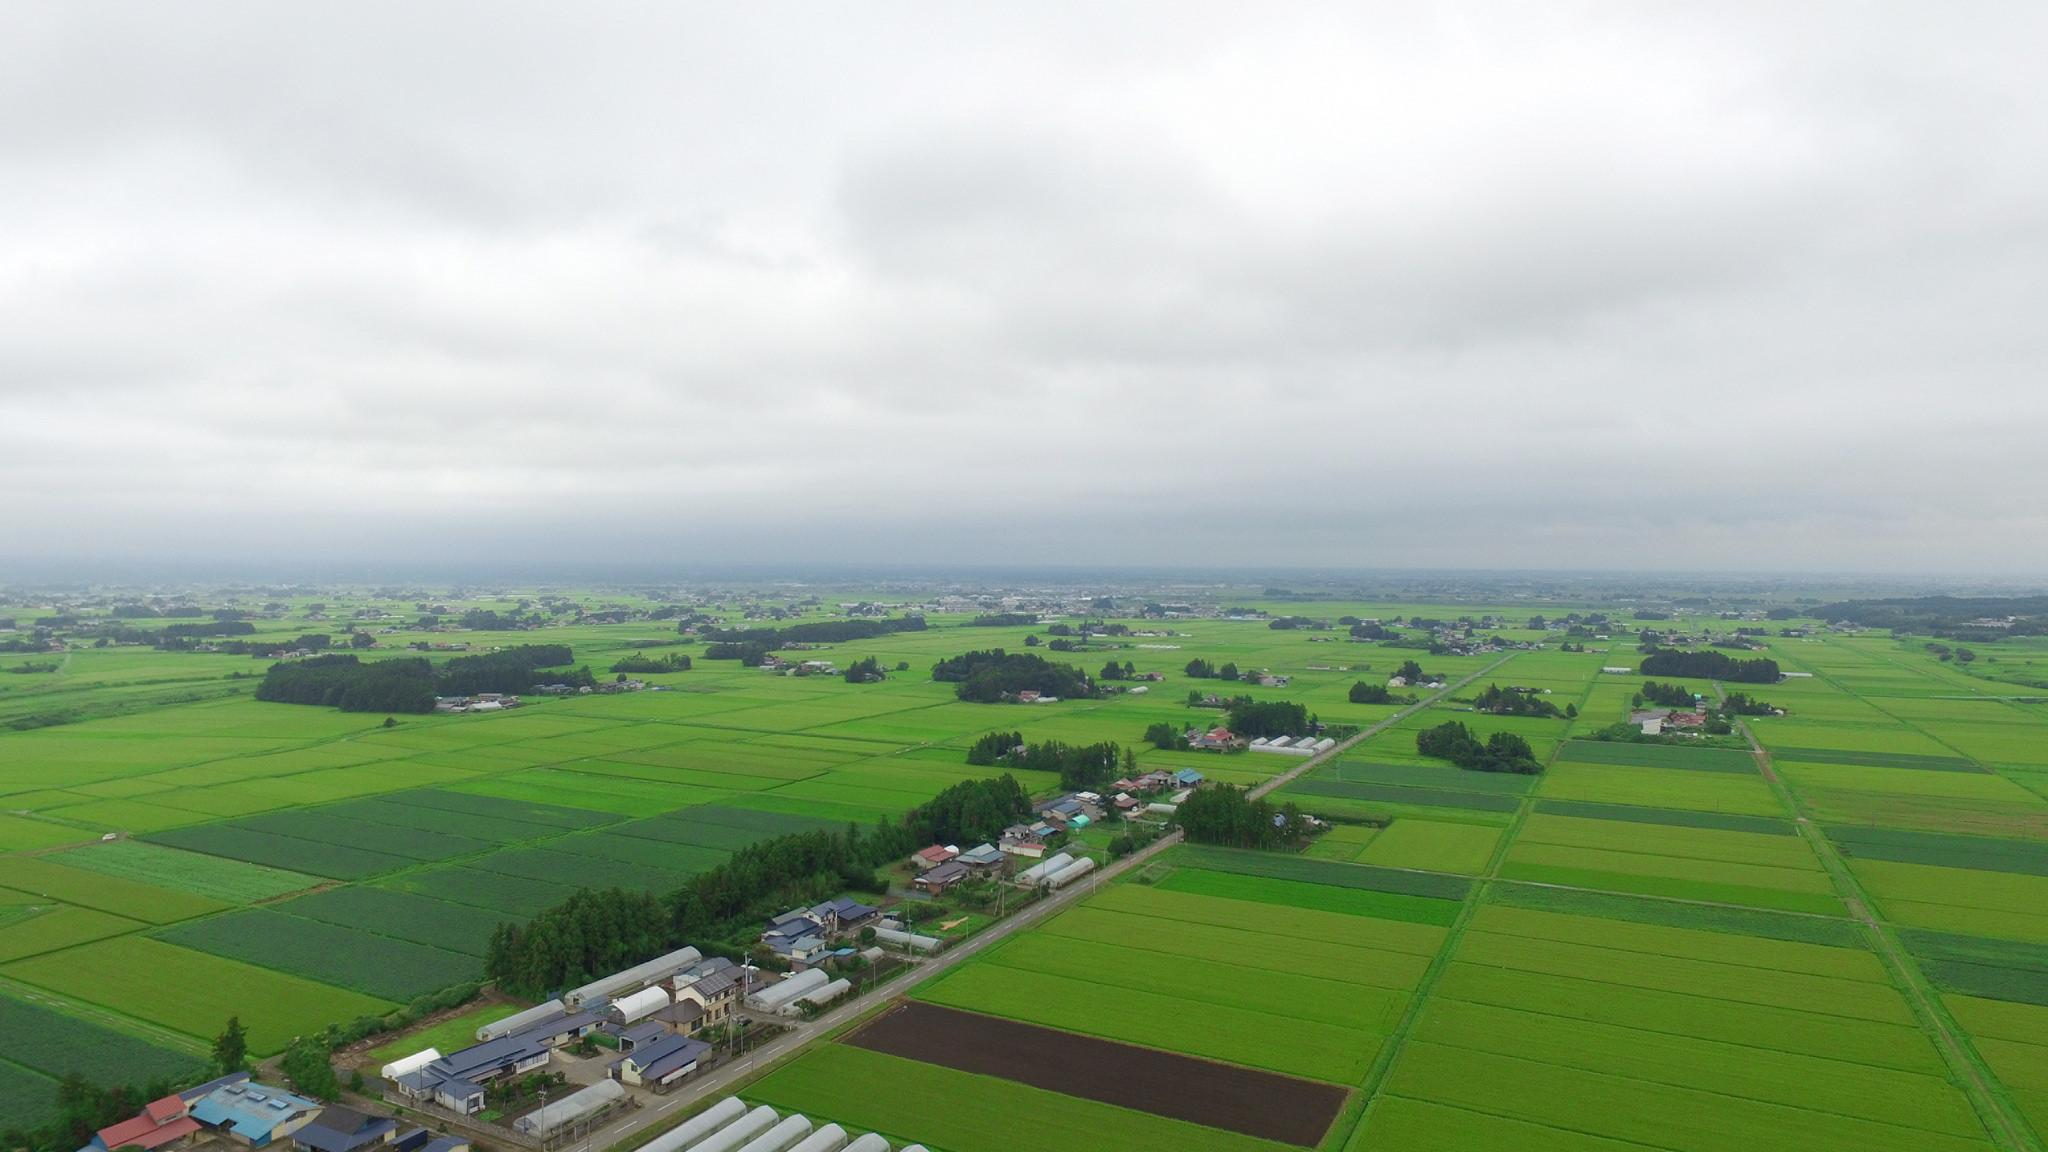 Osaki Kodo's Traditional Water Management System for Sustainable Paddy Agriculture, Japan